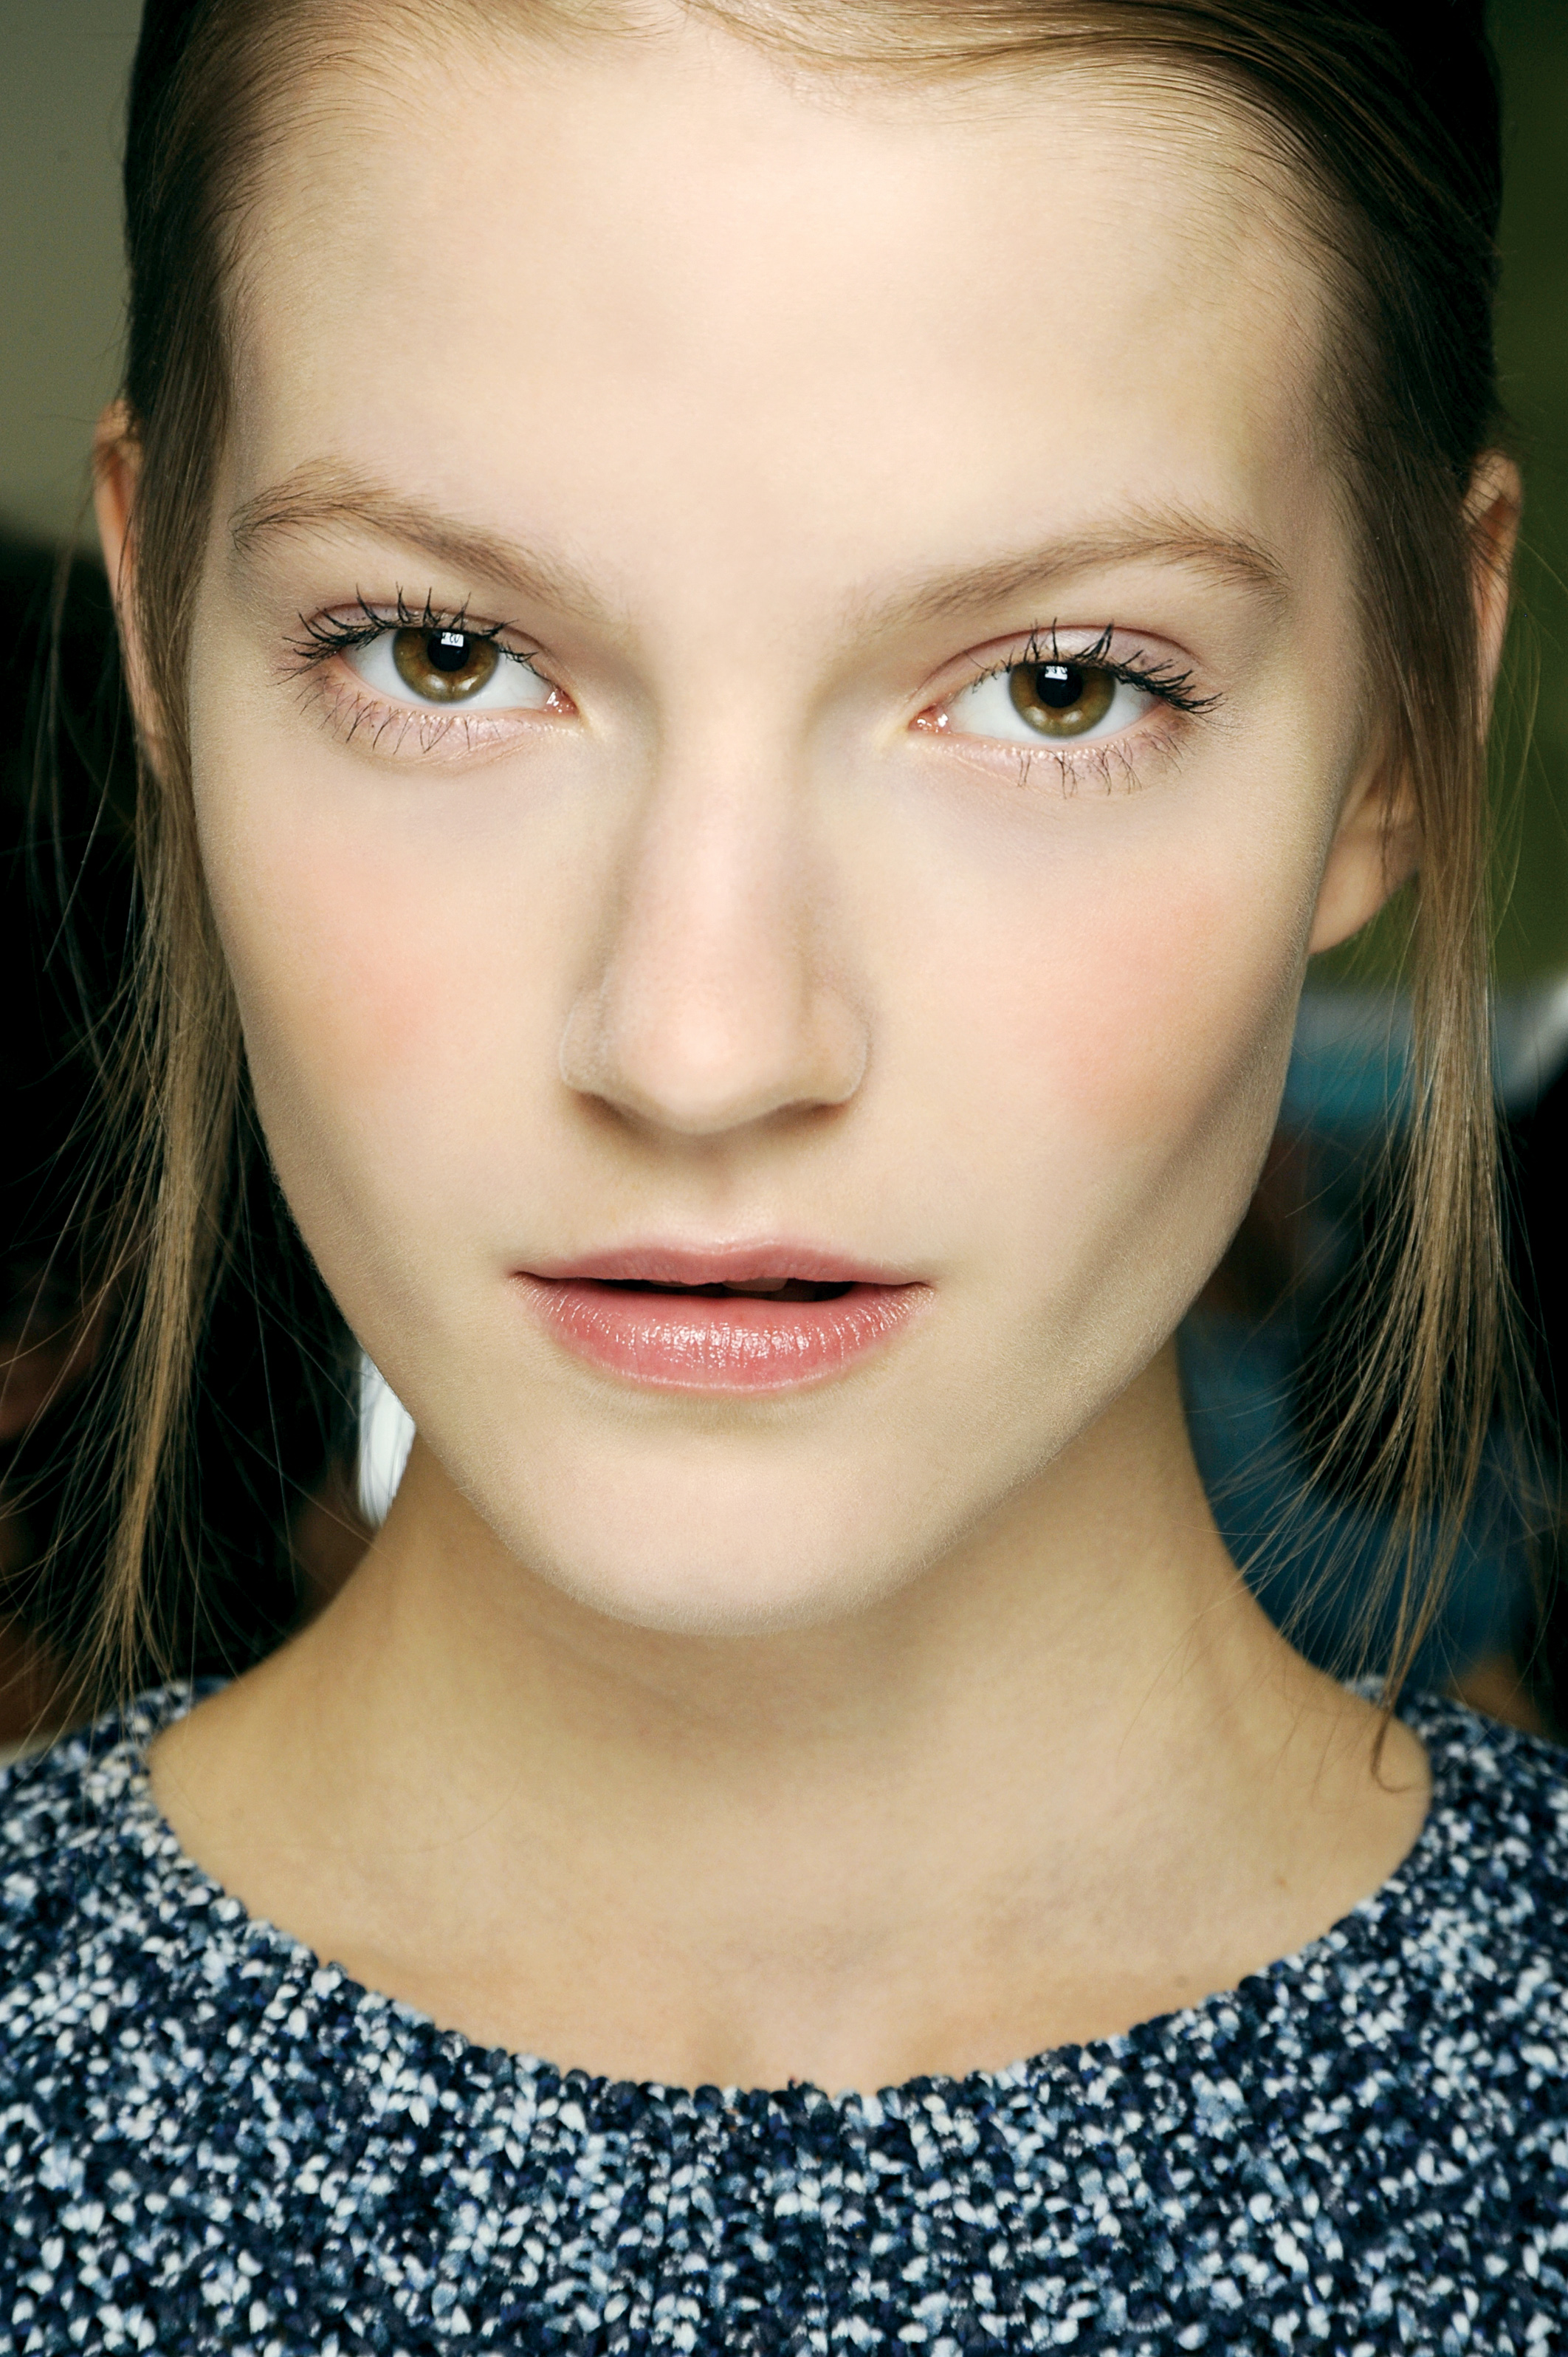 MAC_c-lemaire-2202-ss14-pw_high